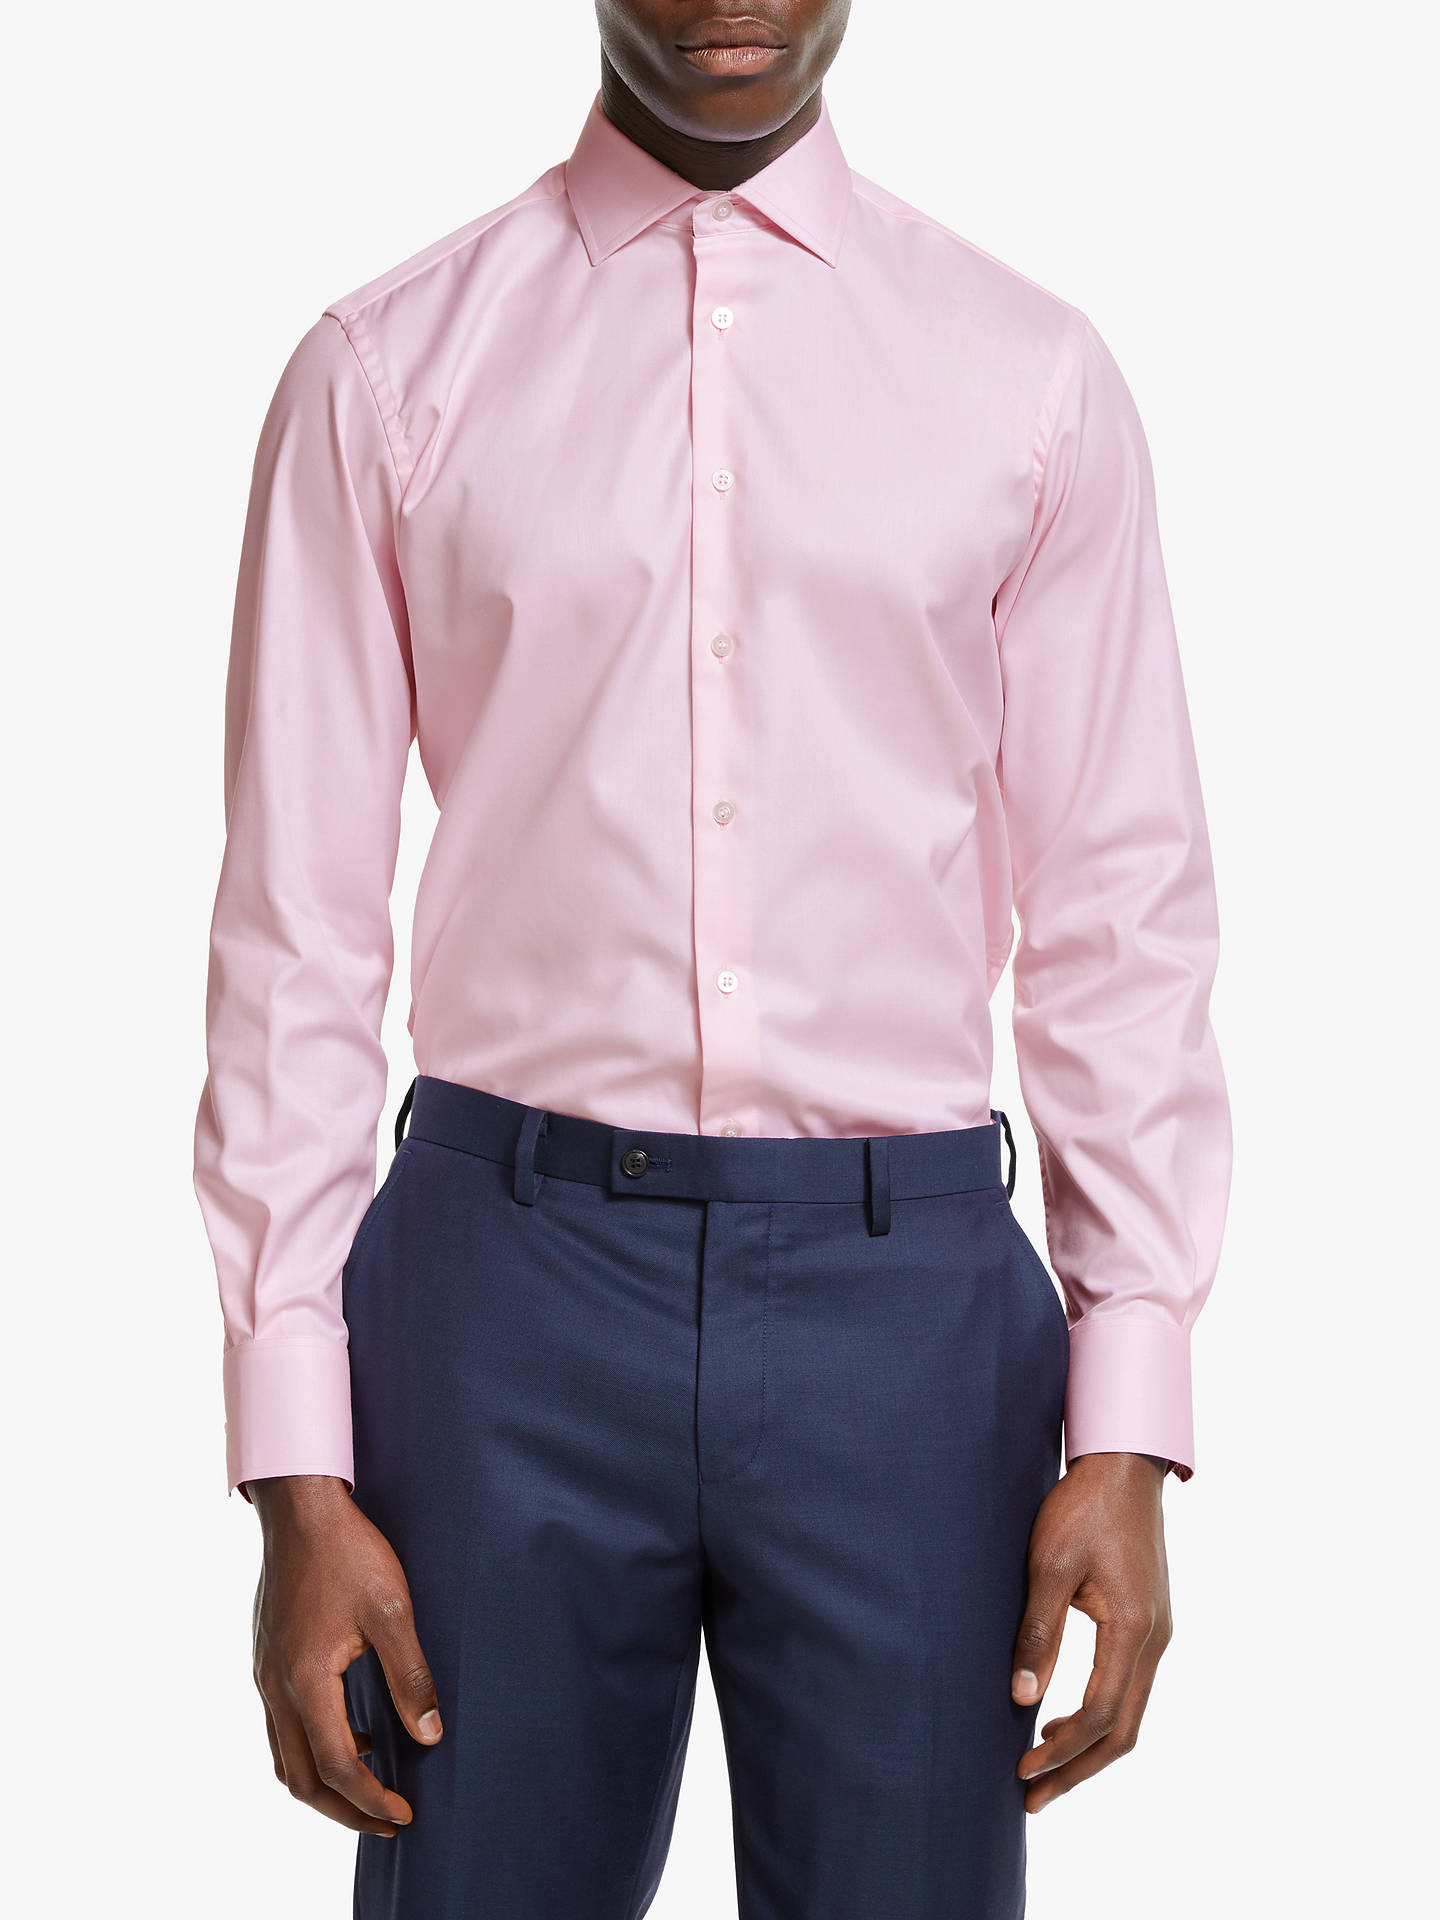 BuySmyth & Gibson Non Iron Twill Contemporary Fit Shirt, Pink, 15 Online at johnlewis.com